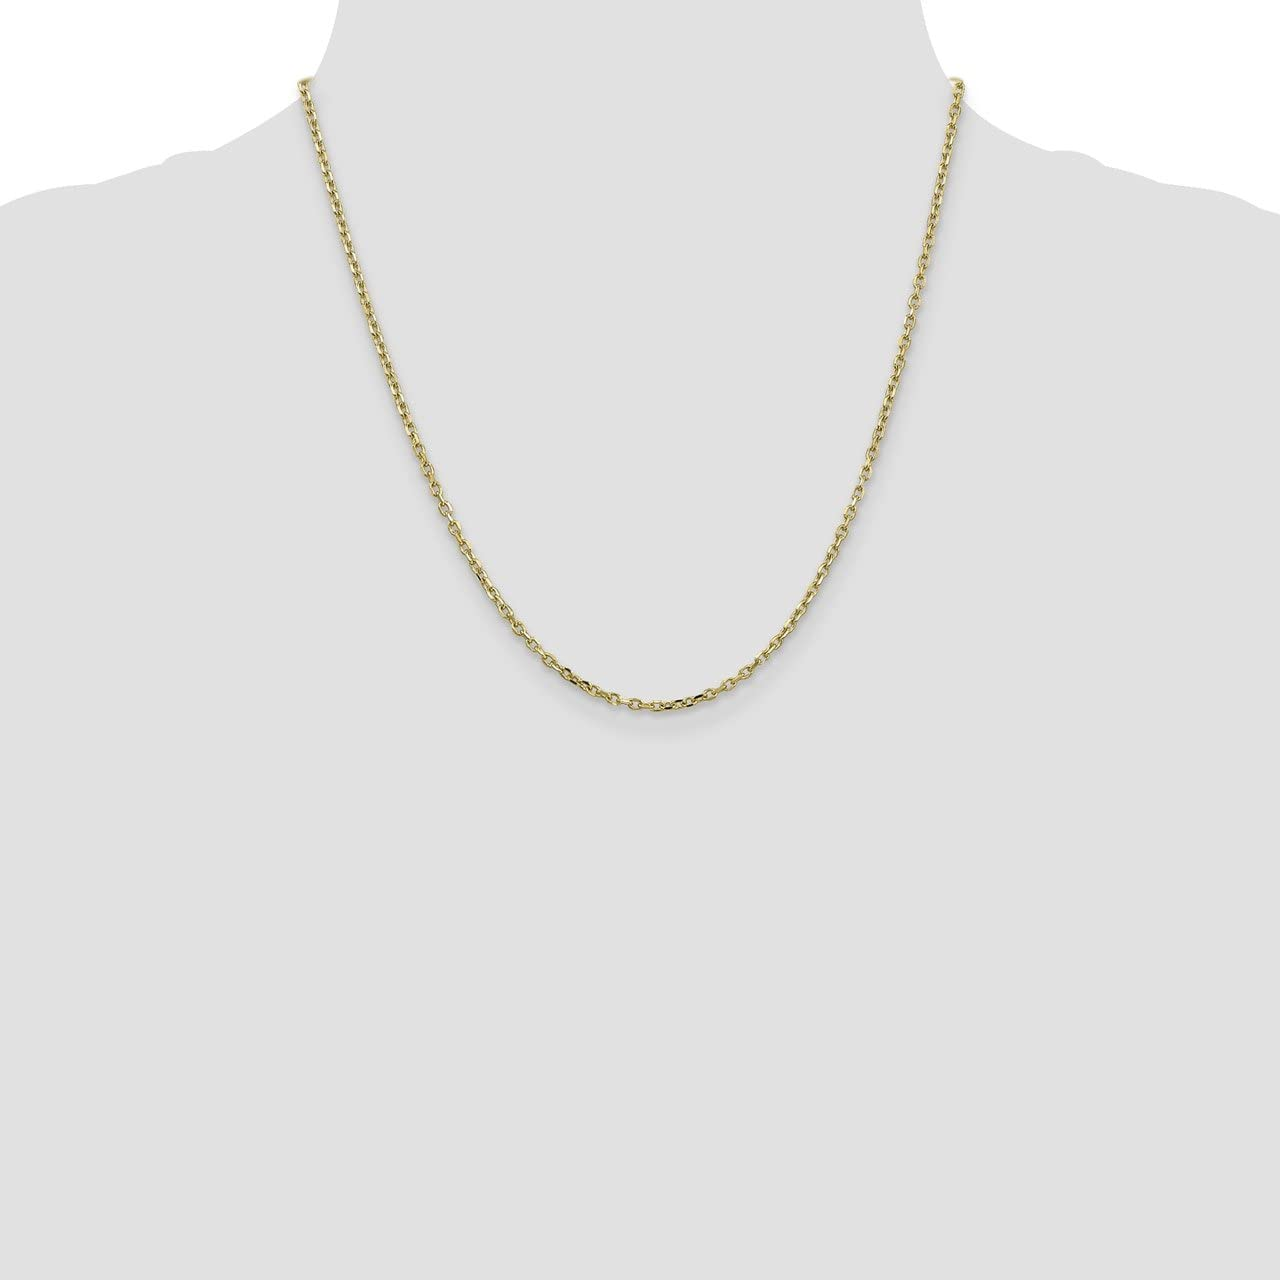 Lex /& Lu 10k Yellow Gold 2.2mm D//C Cable Chain Necklace